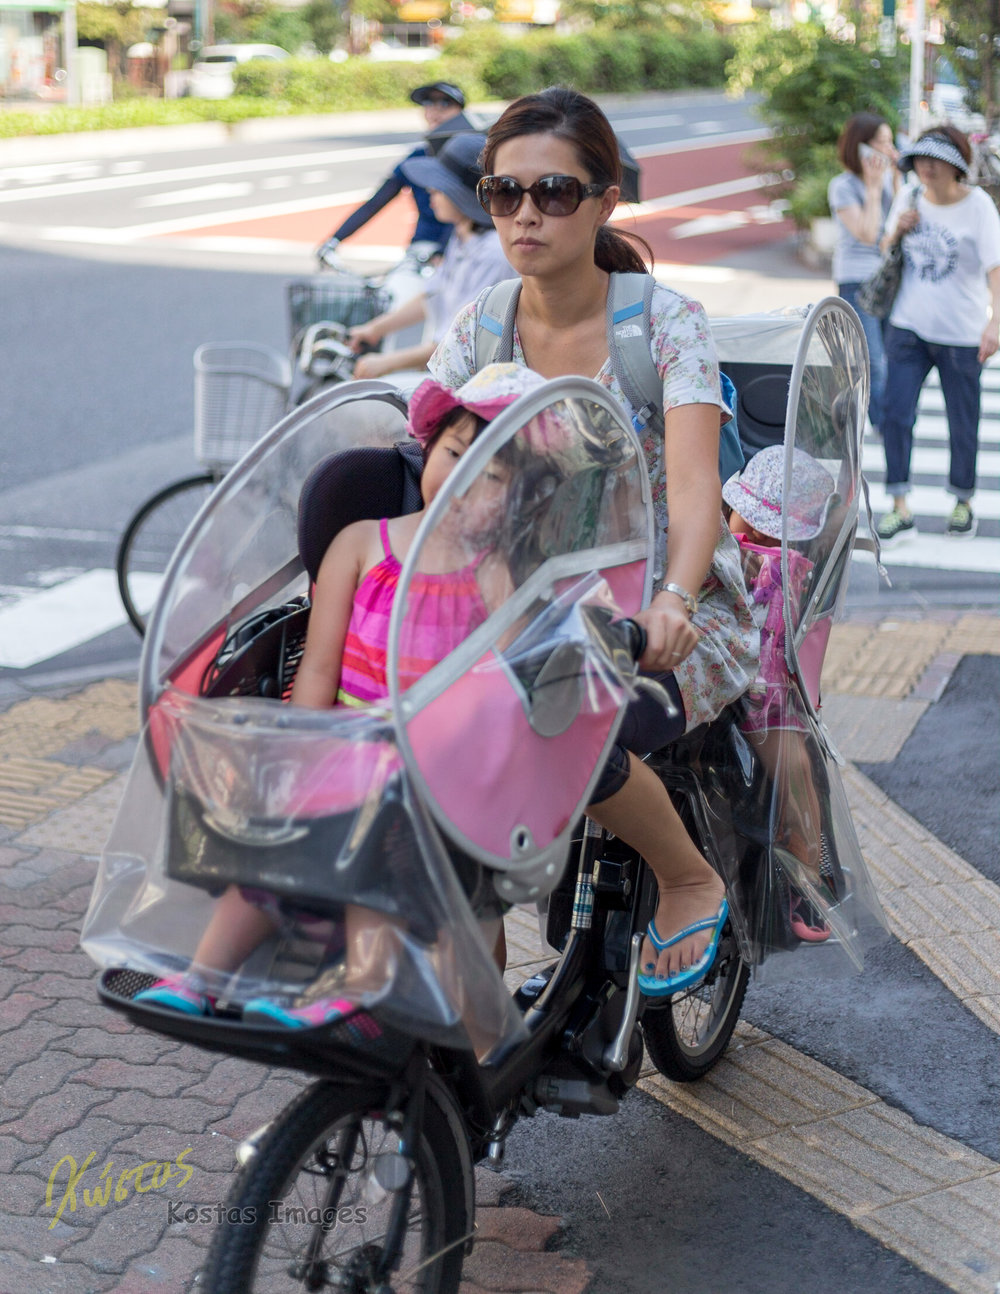 20160901-IMG_6215-Bicycle riding in Japan.jpg